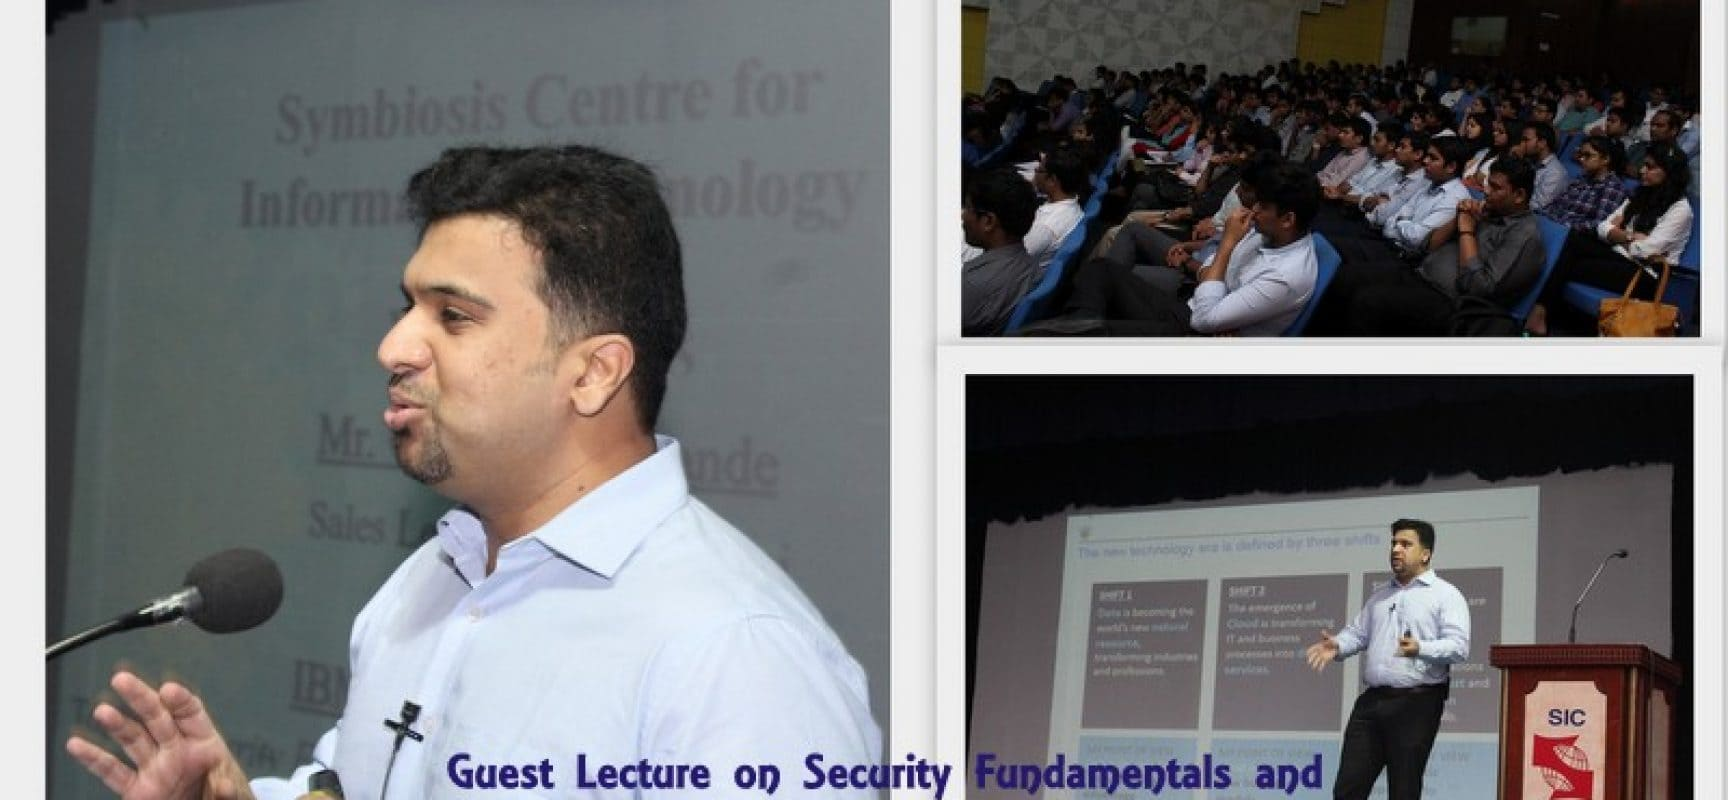 Guest Lecture on Security Fundamentals and Management in Business Organizations